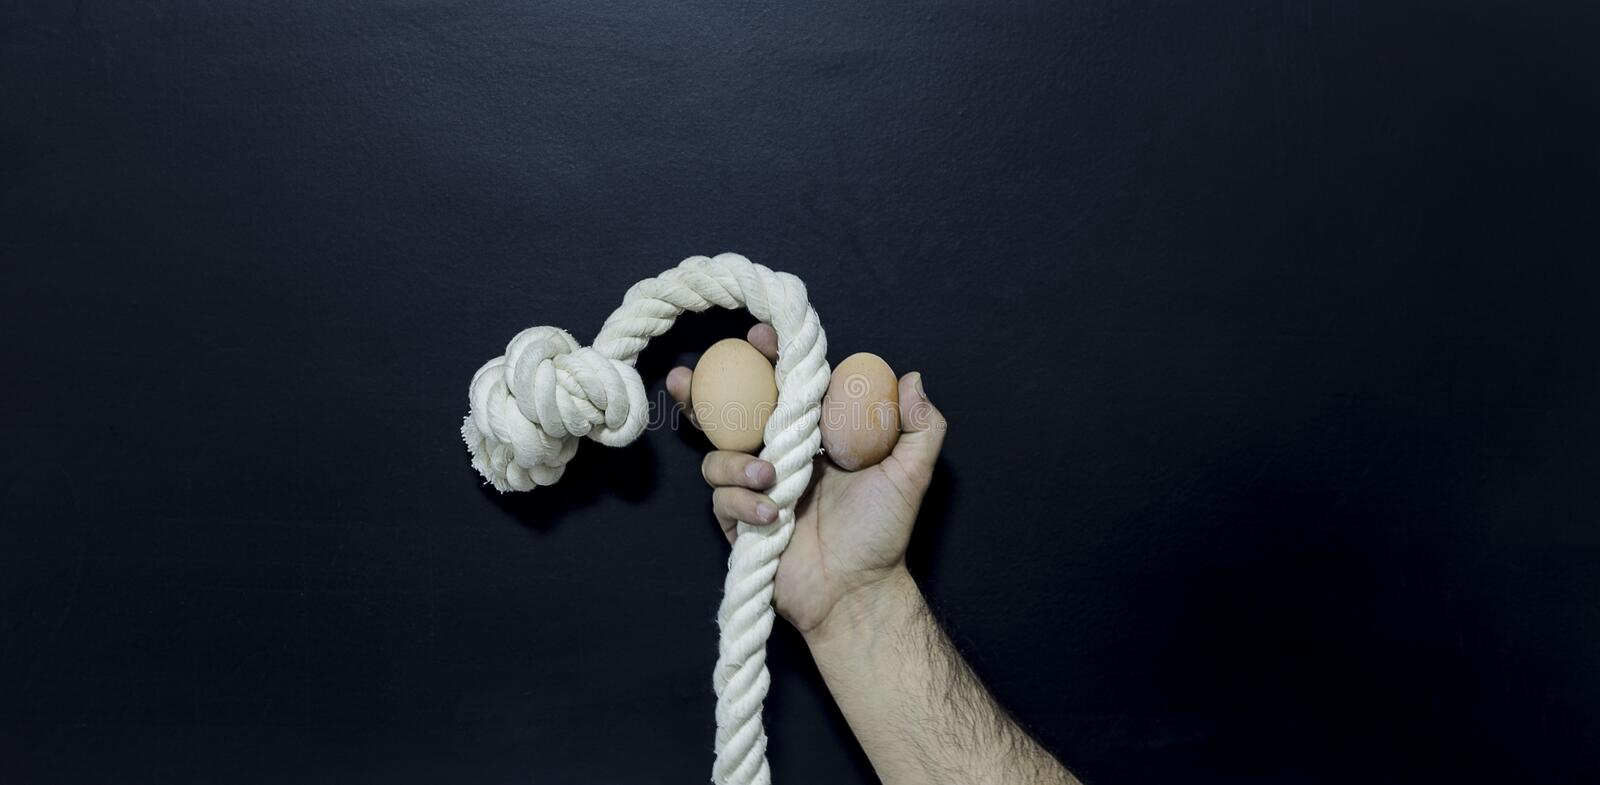 Man holding rope and two eggs showing erectile dysfunction stock photography